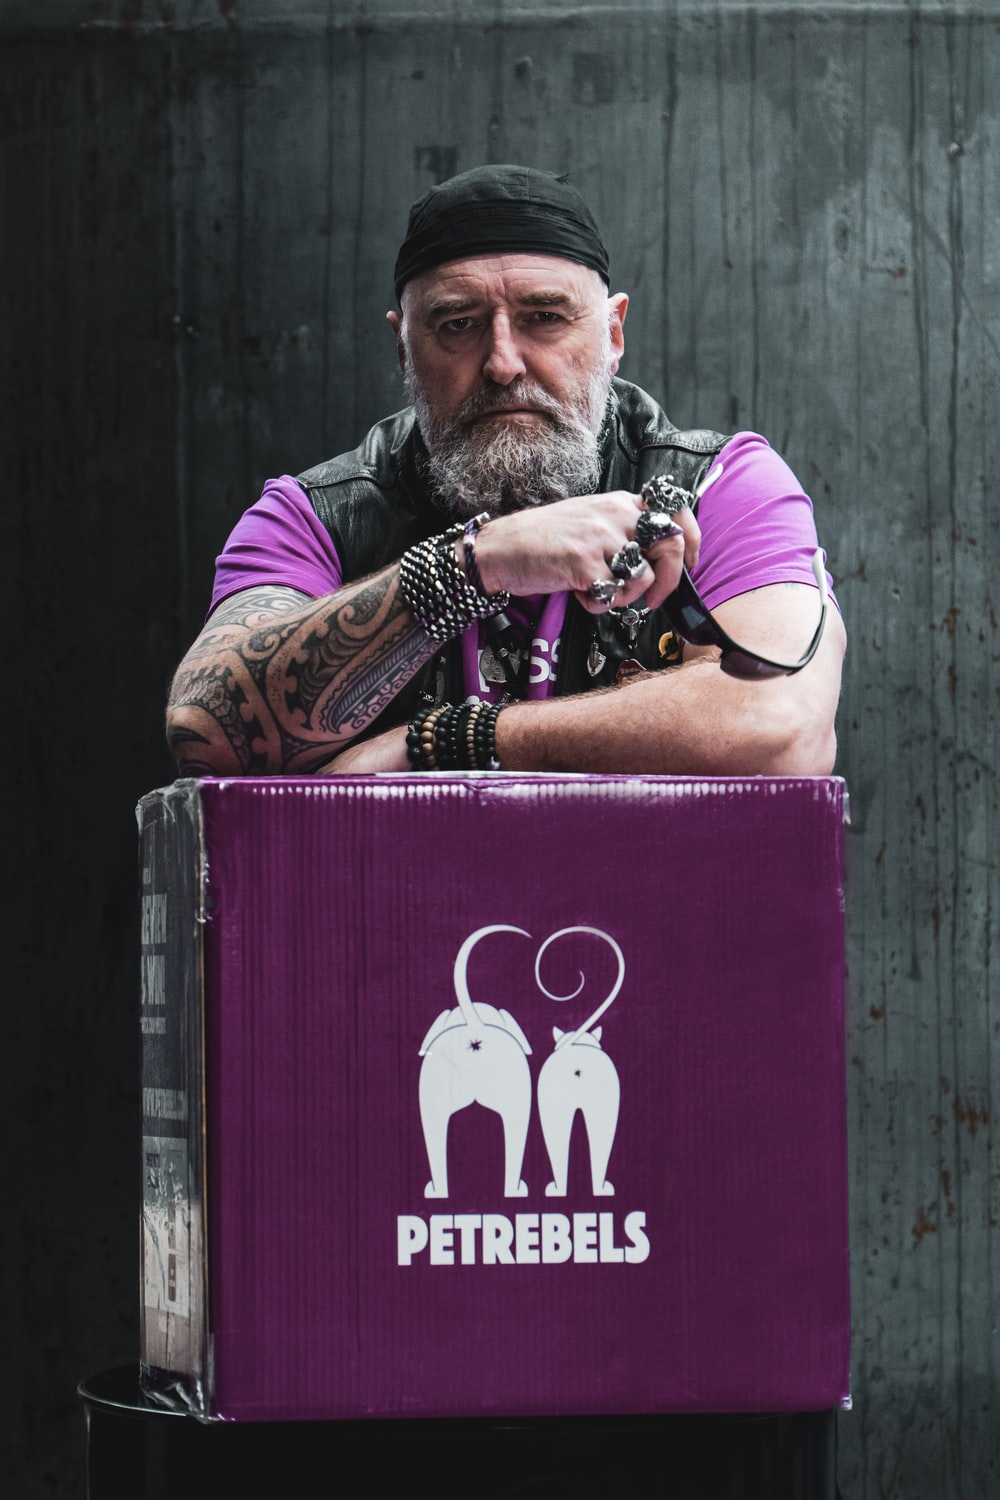 man in purple tank top holding red box